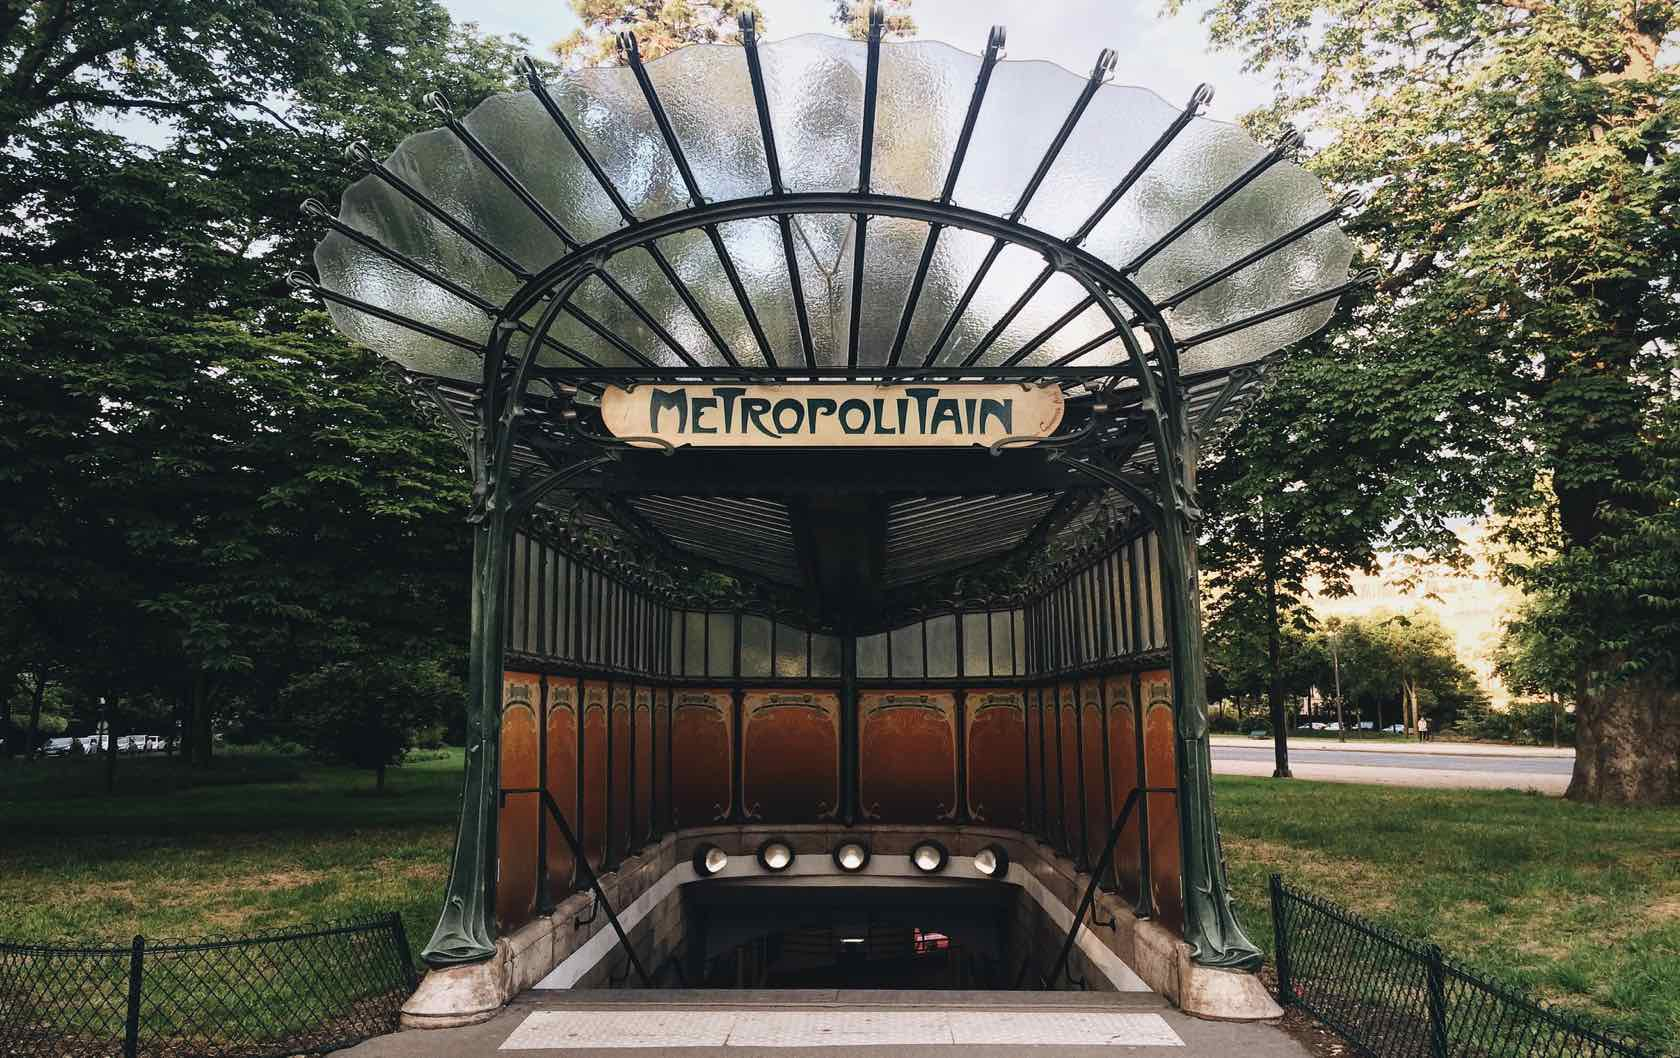 Paris Metro Station Entrance Porte Dauphine